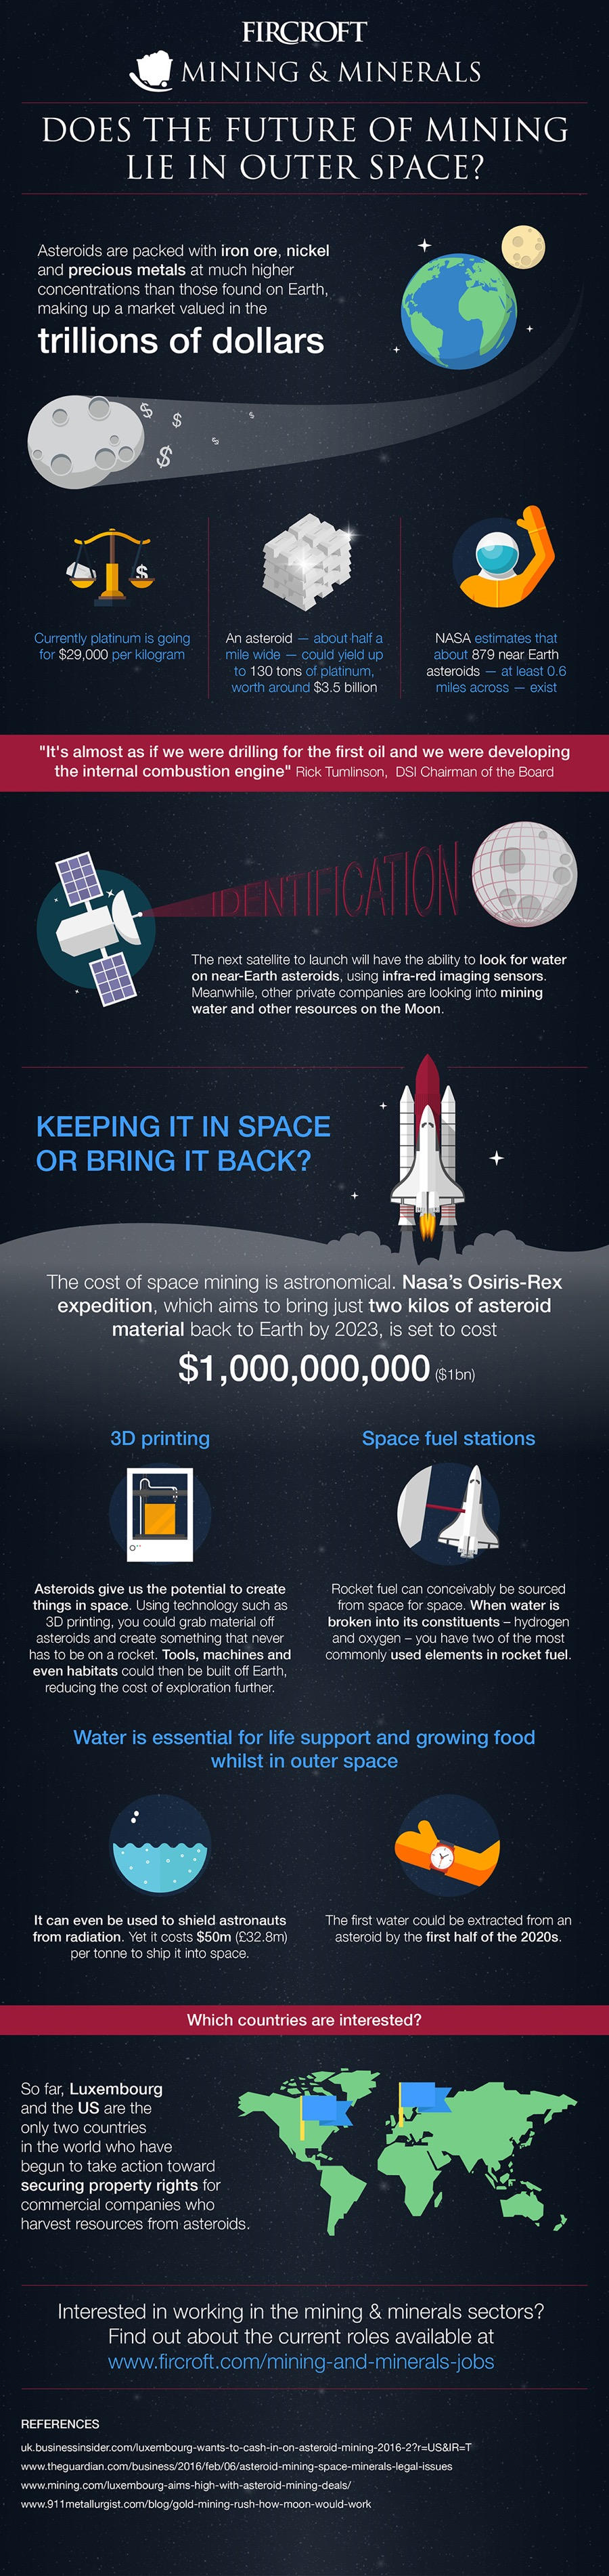 INFOGRAPHIC: The facts and figures that make space mining real